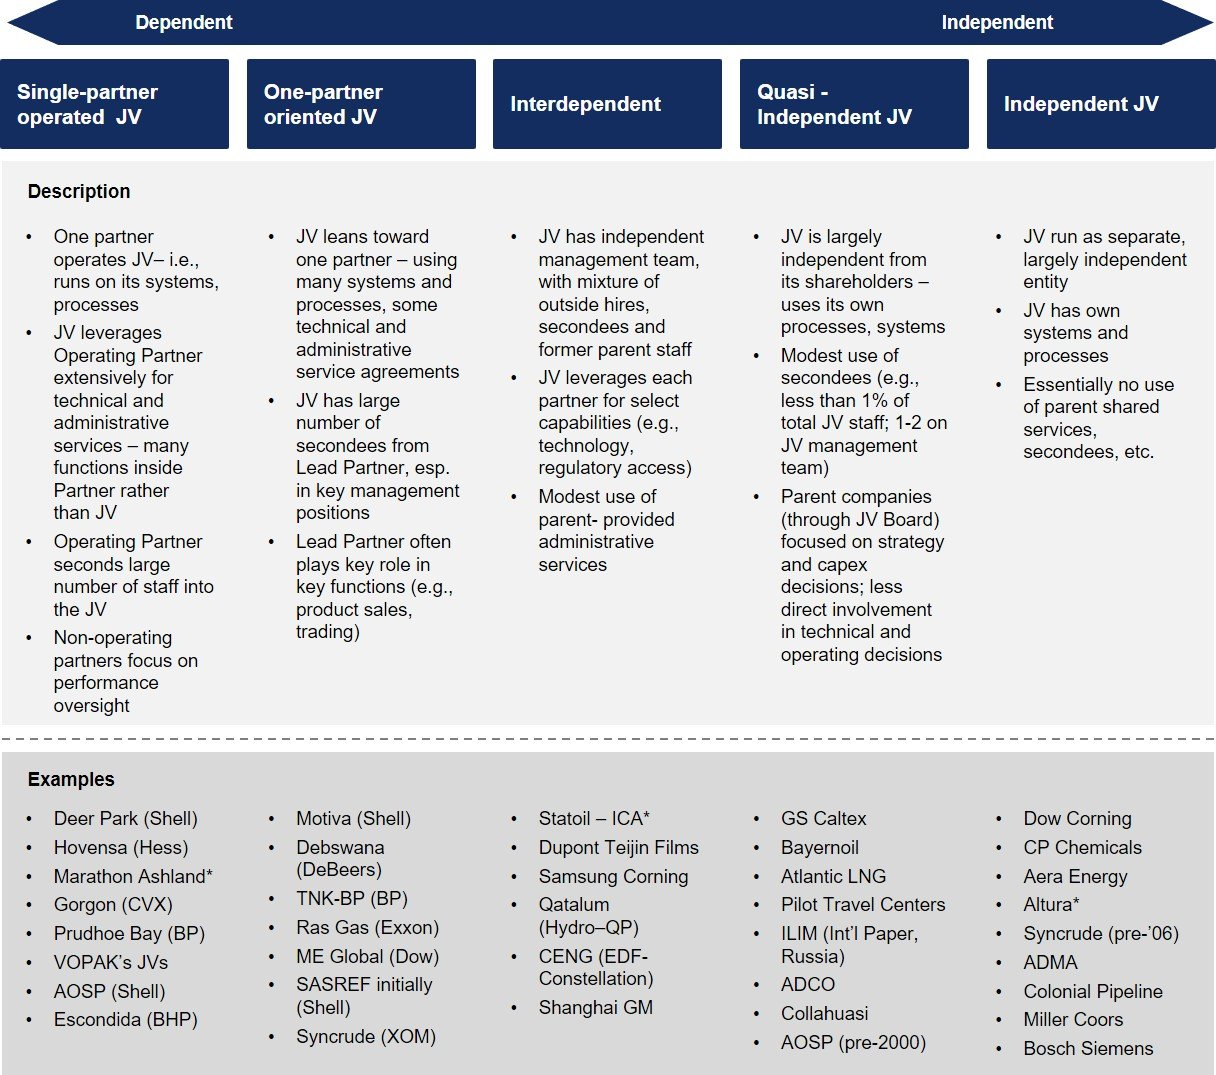 The Joint Venture Operating Model Blueprint